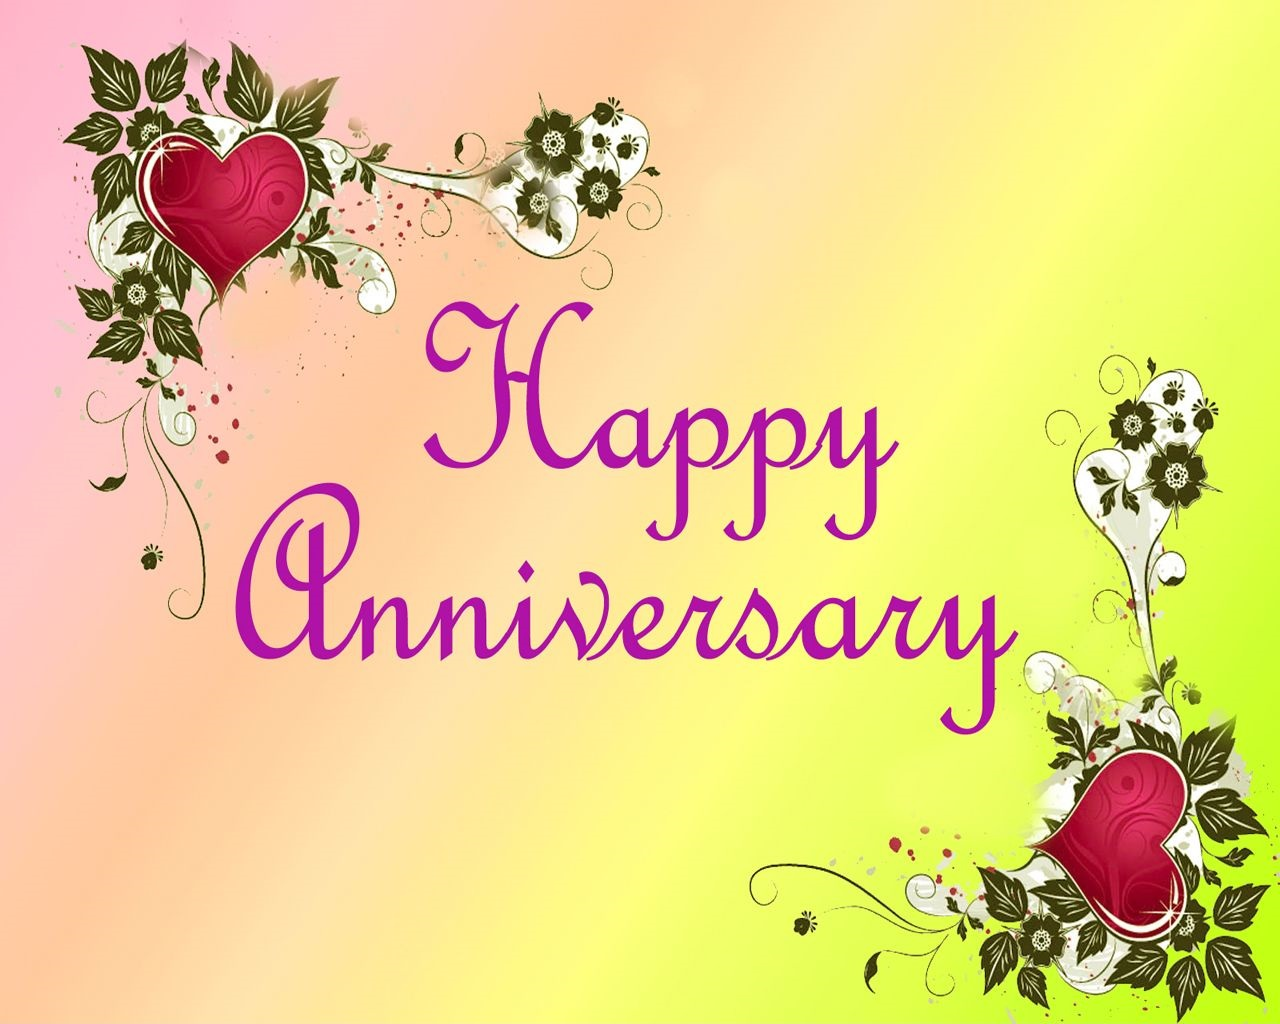 123 greetings wedding anniversary images Modular Homes Photo Gallery in New Jersey